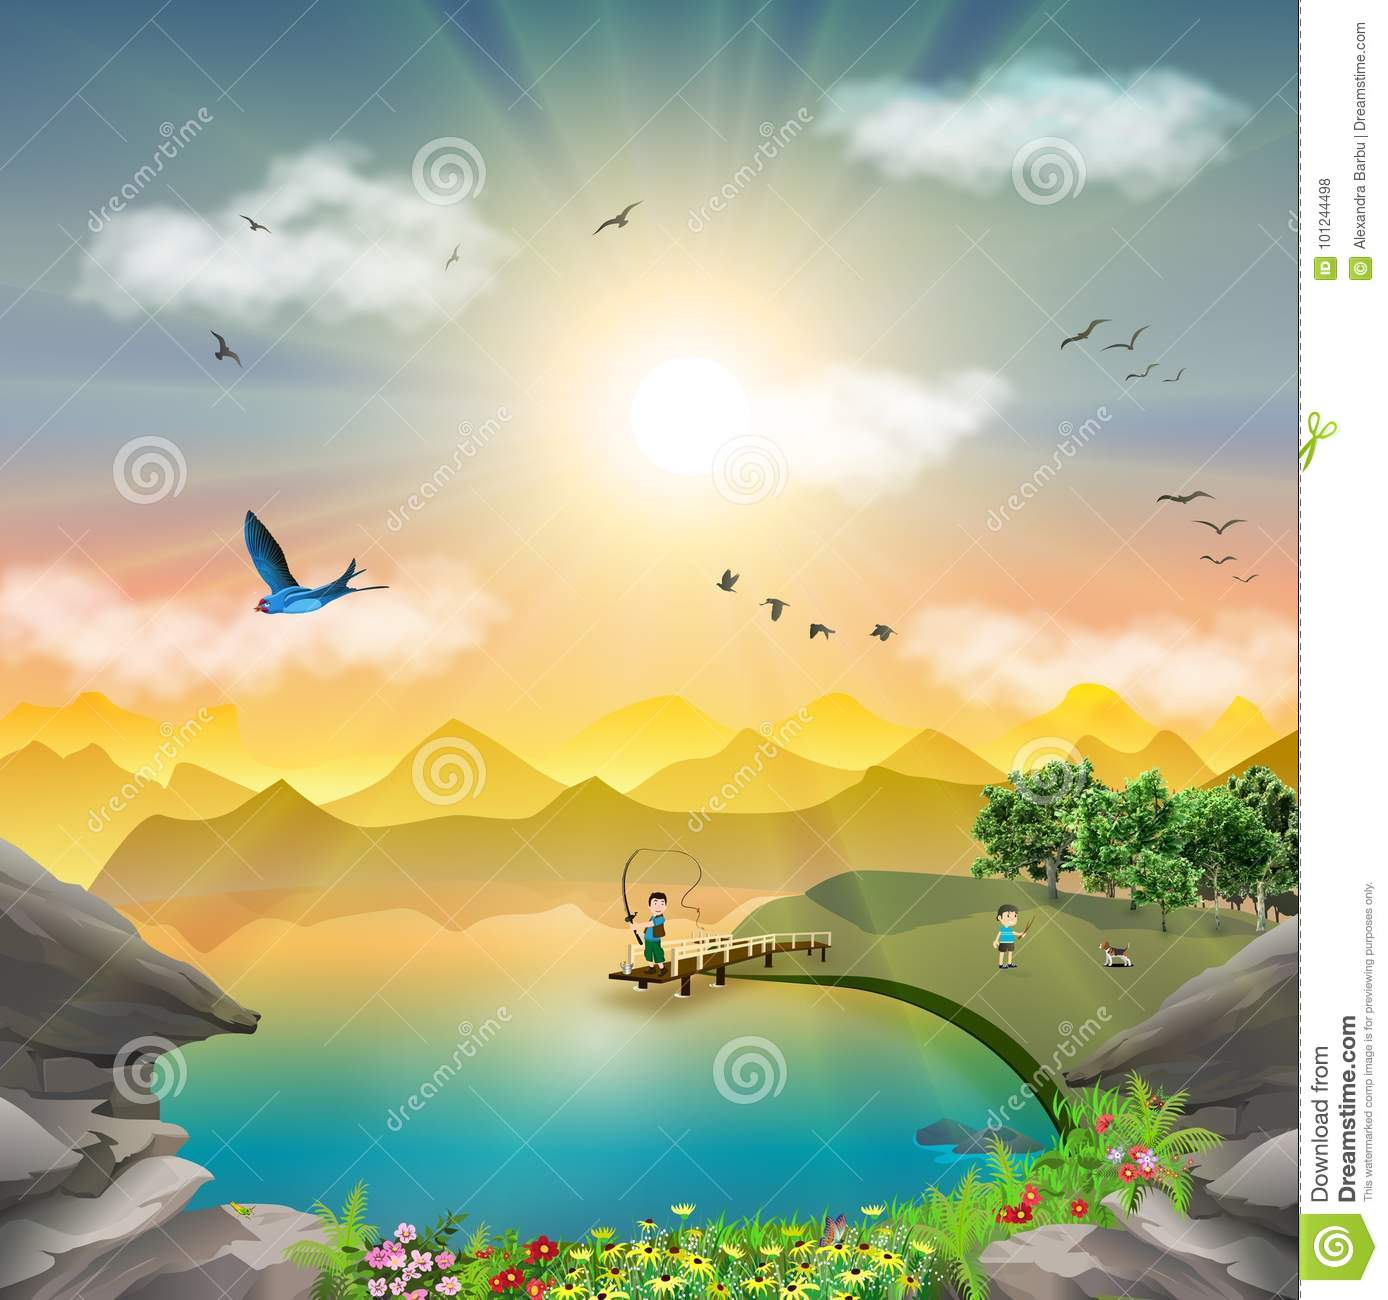 Download Nature Mountain Landscape At Sunset Lake Fishing Trip Stock Vector - Illustration of burst, cute: 101244498